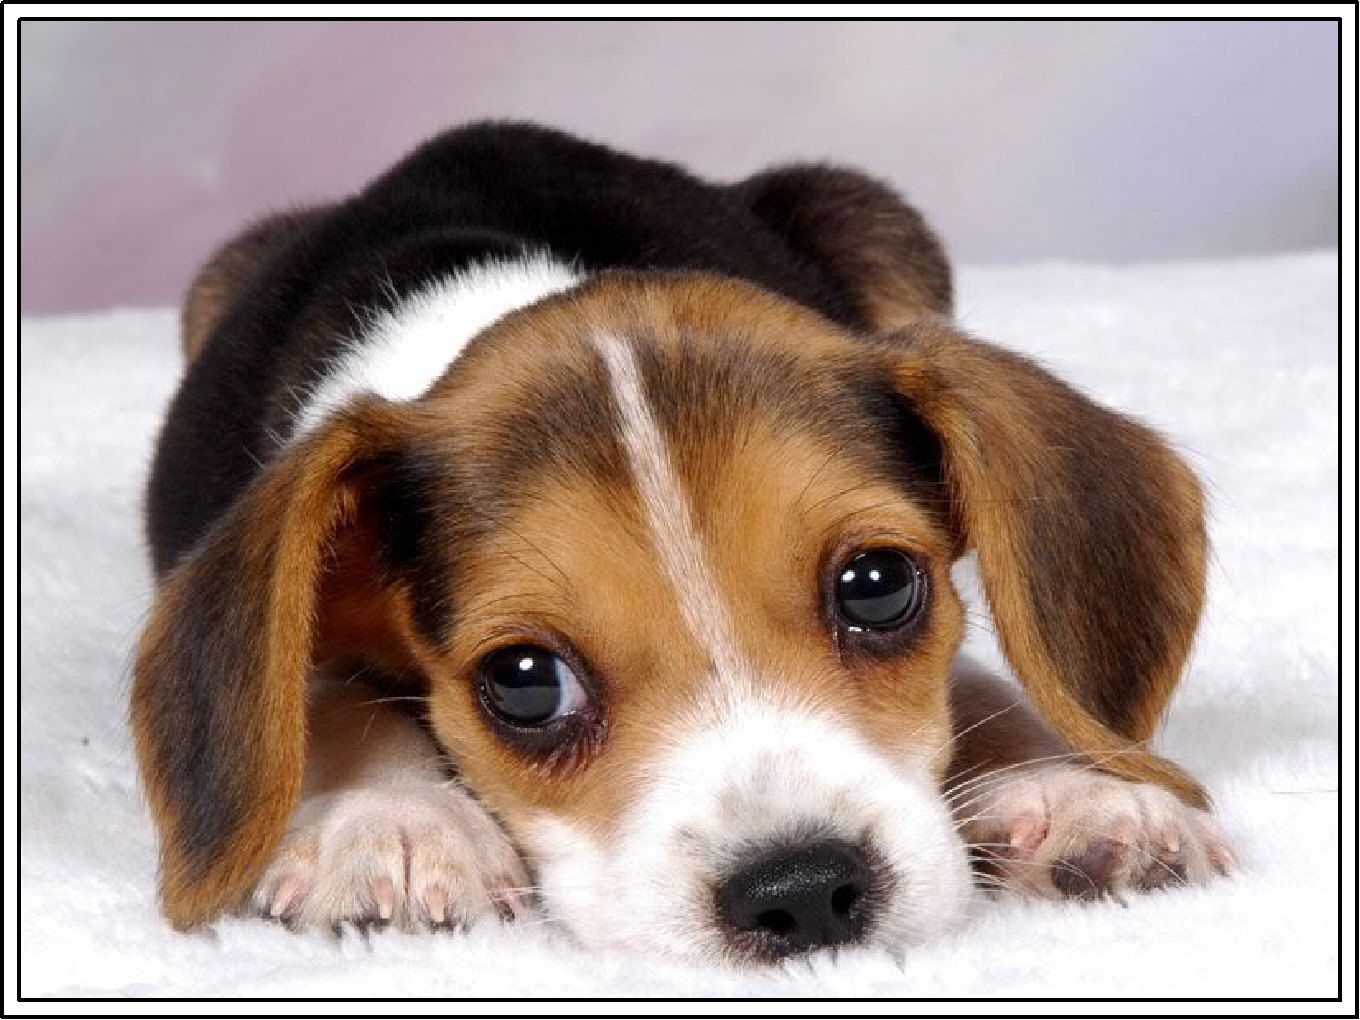 Beagle Puppies Cute Animals Cute Beagles Cute Dogs Beagle Puppy